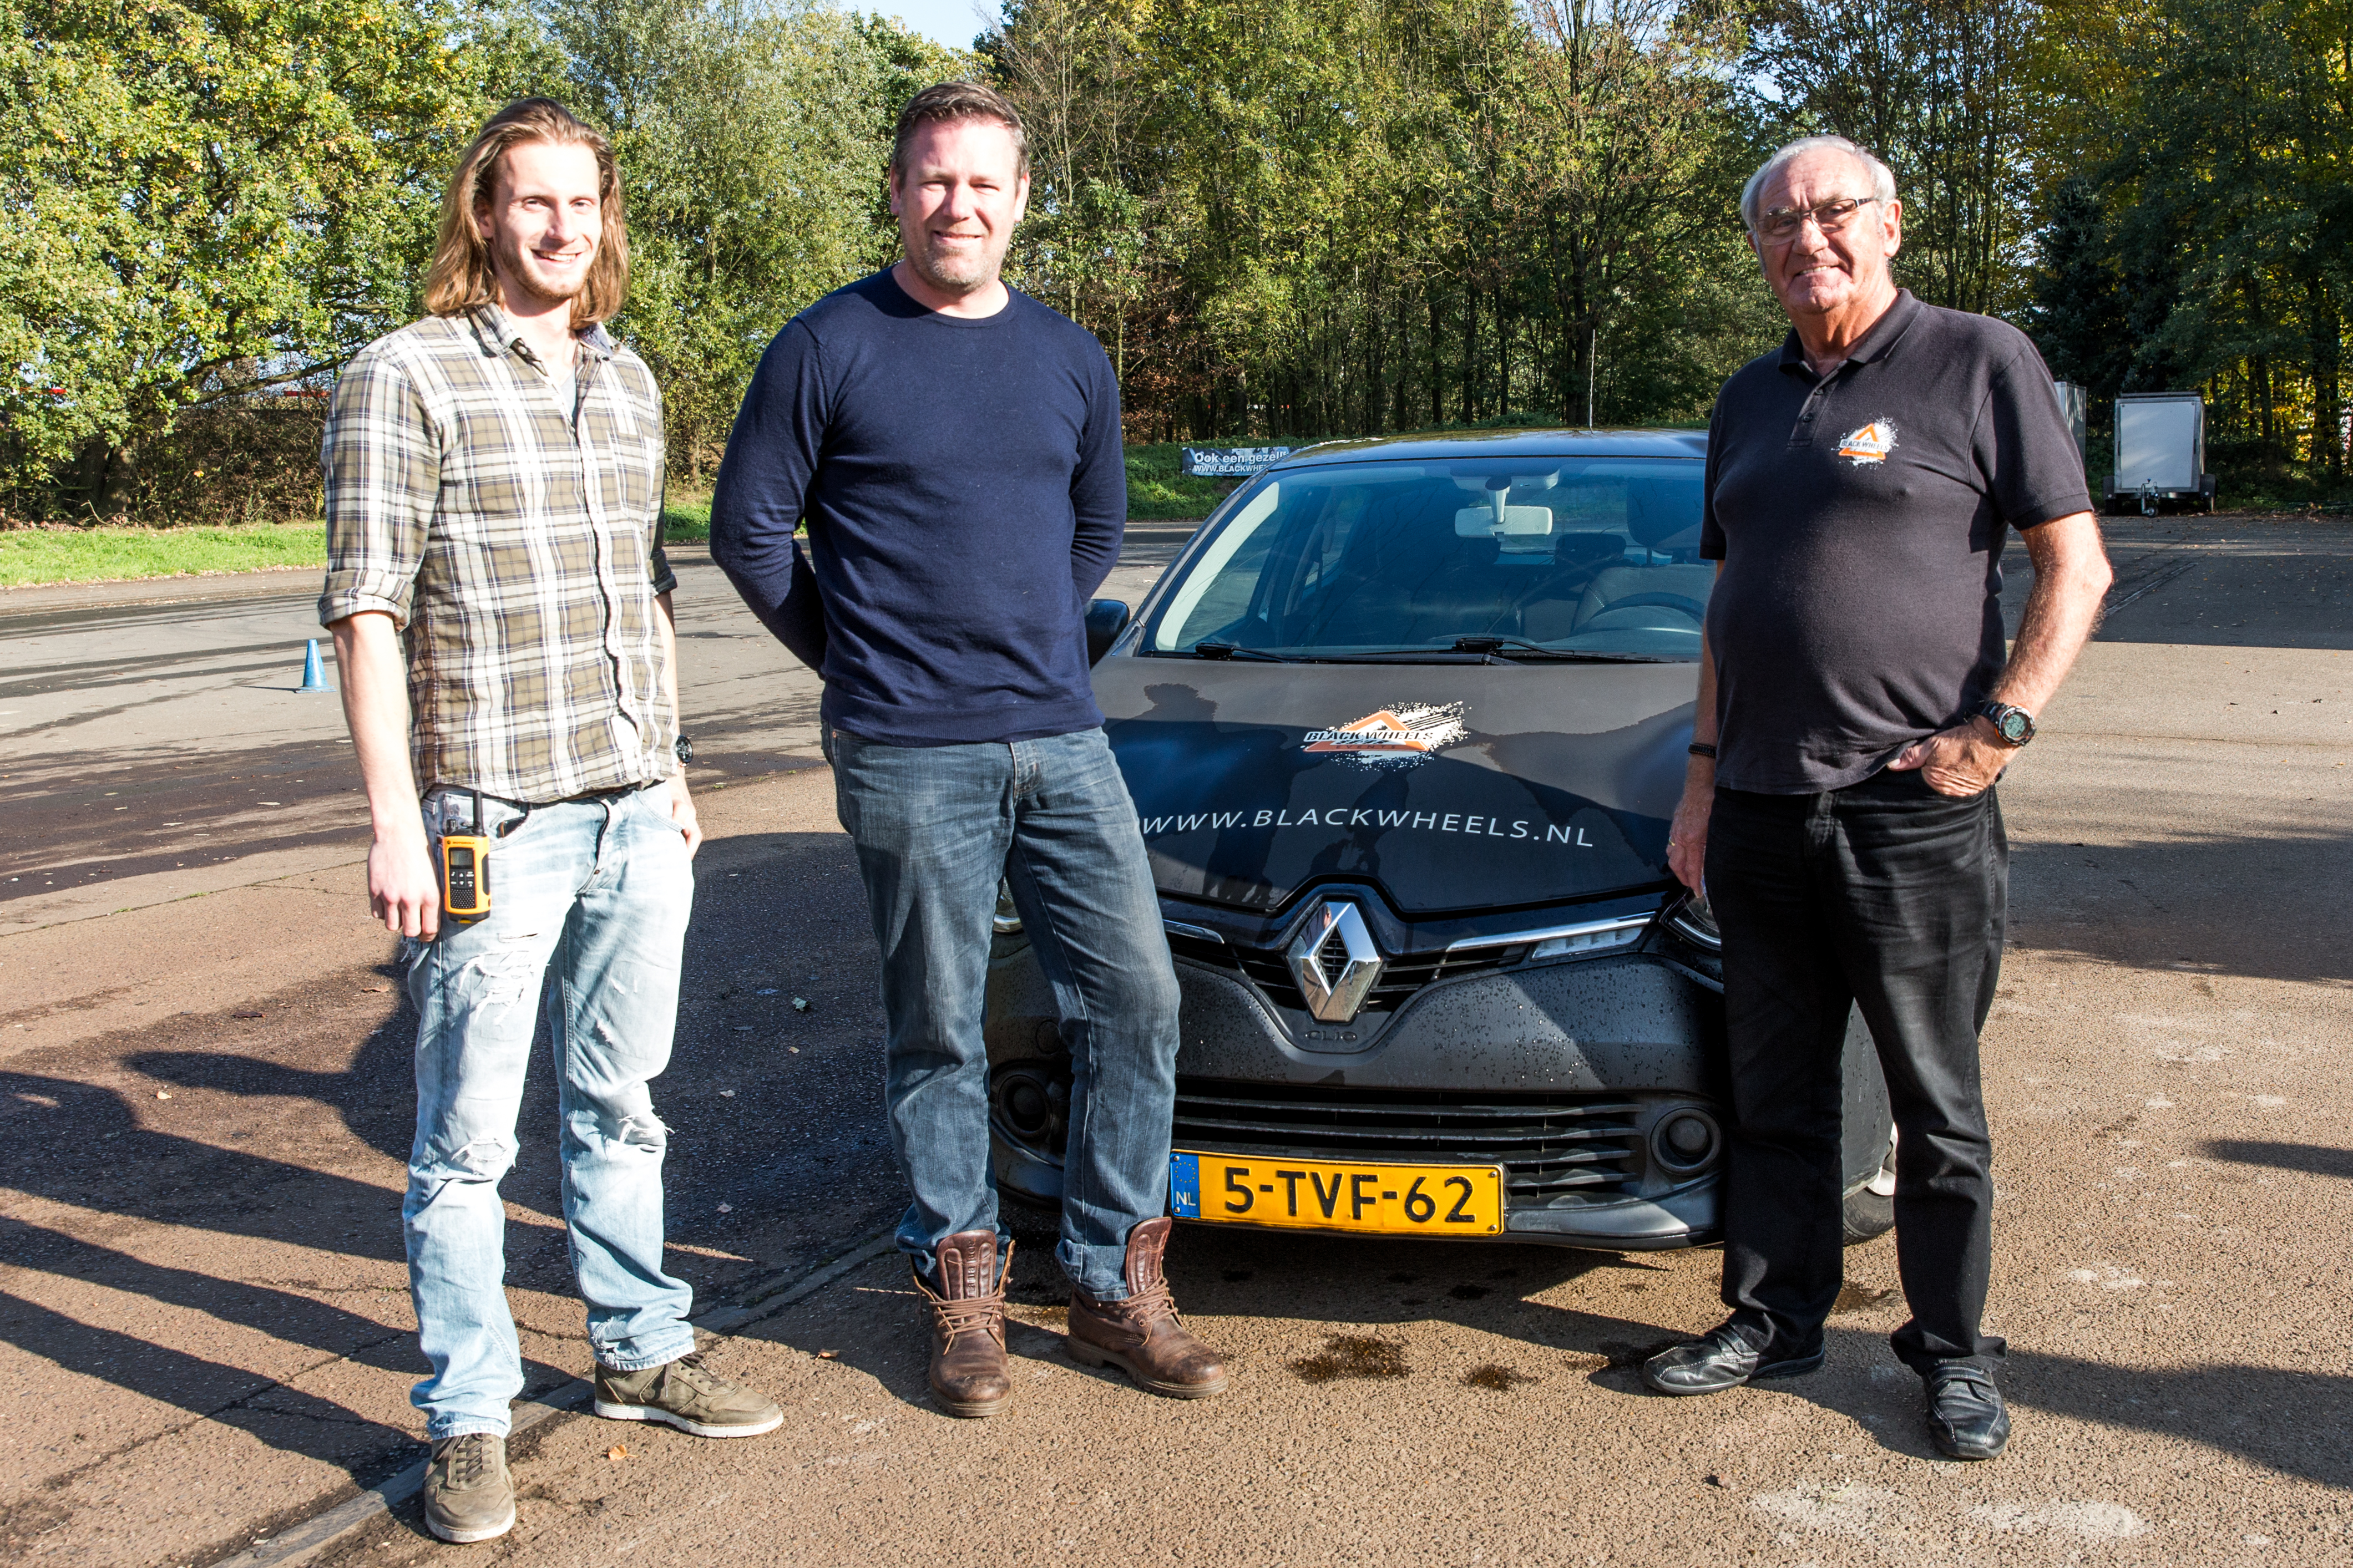 V.l.n.r.: instructeur Cas Scharn, eigenaar Joost van ElstV.l.n.r.: instructeur Cas Scharn, eigenaar Joost van Elst van Black Wheels en instructeur Cees van de Loo. foto Janny Mallee van Black Wheels en instructeur Cees van de Loo.